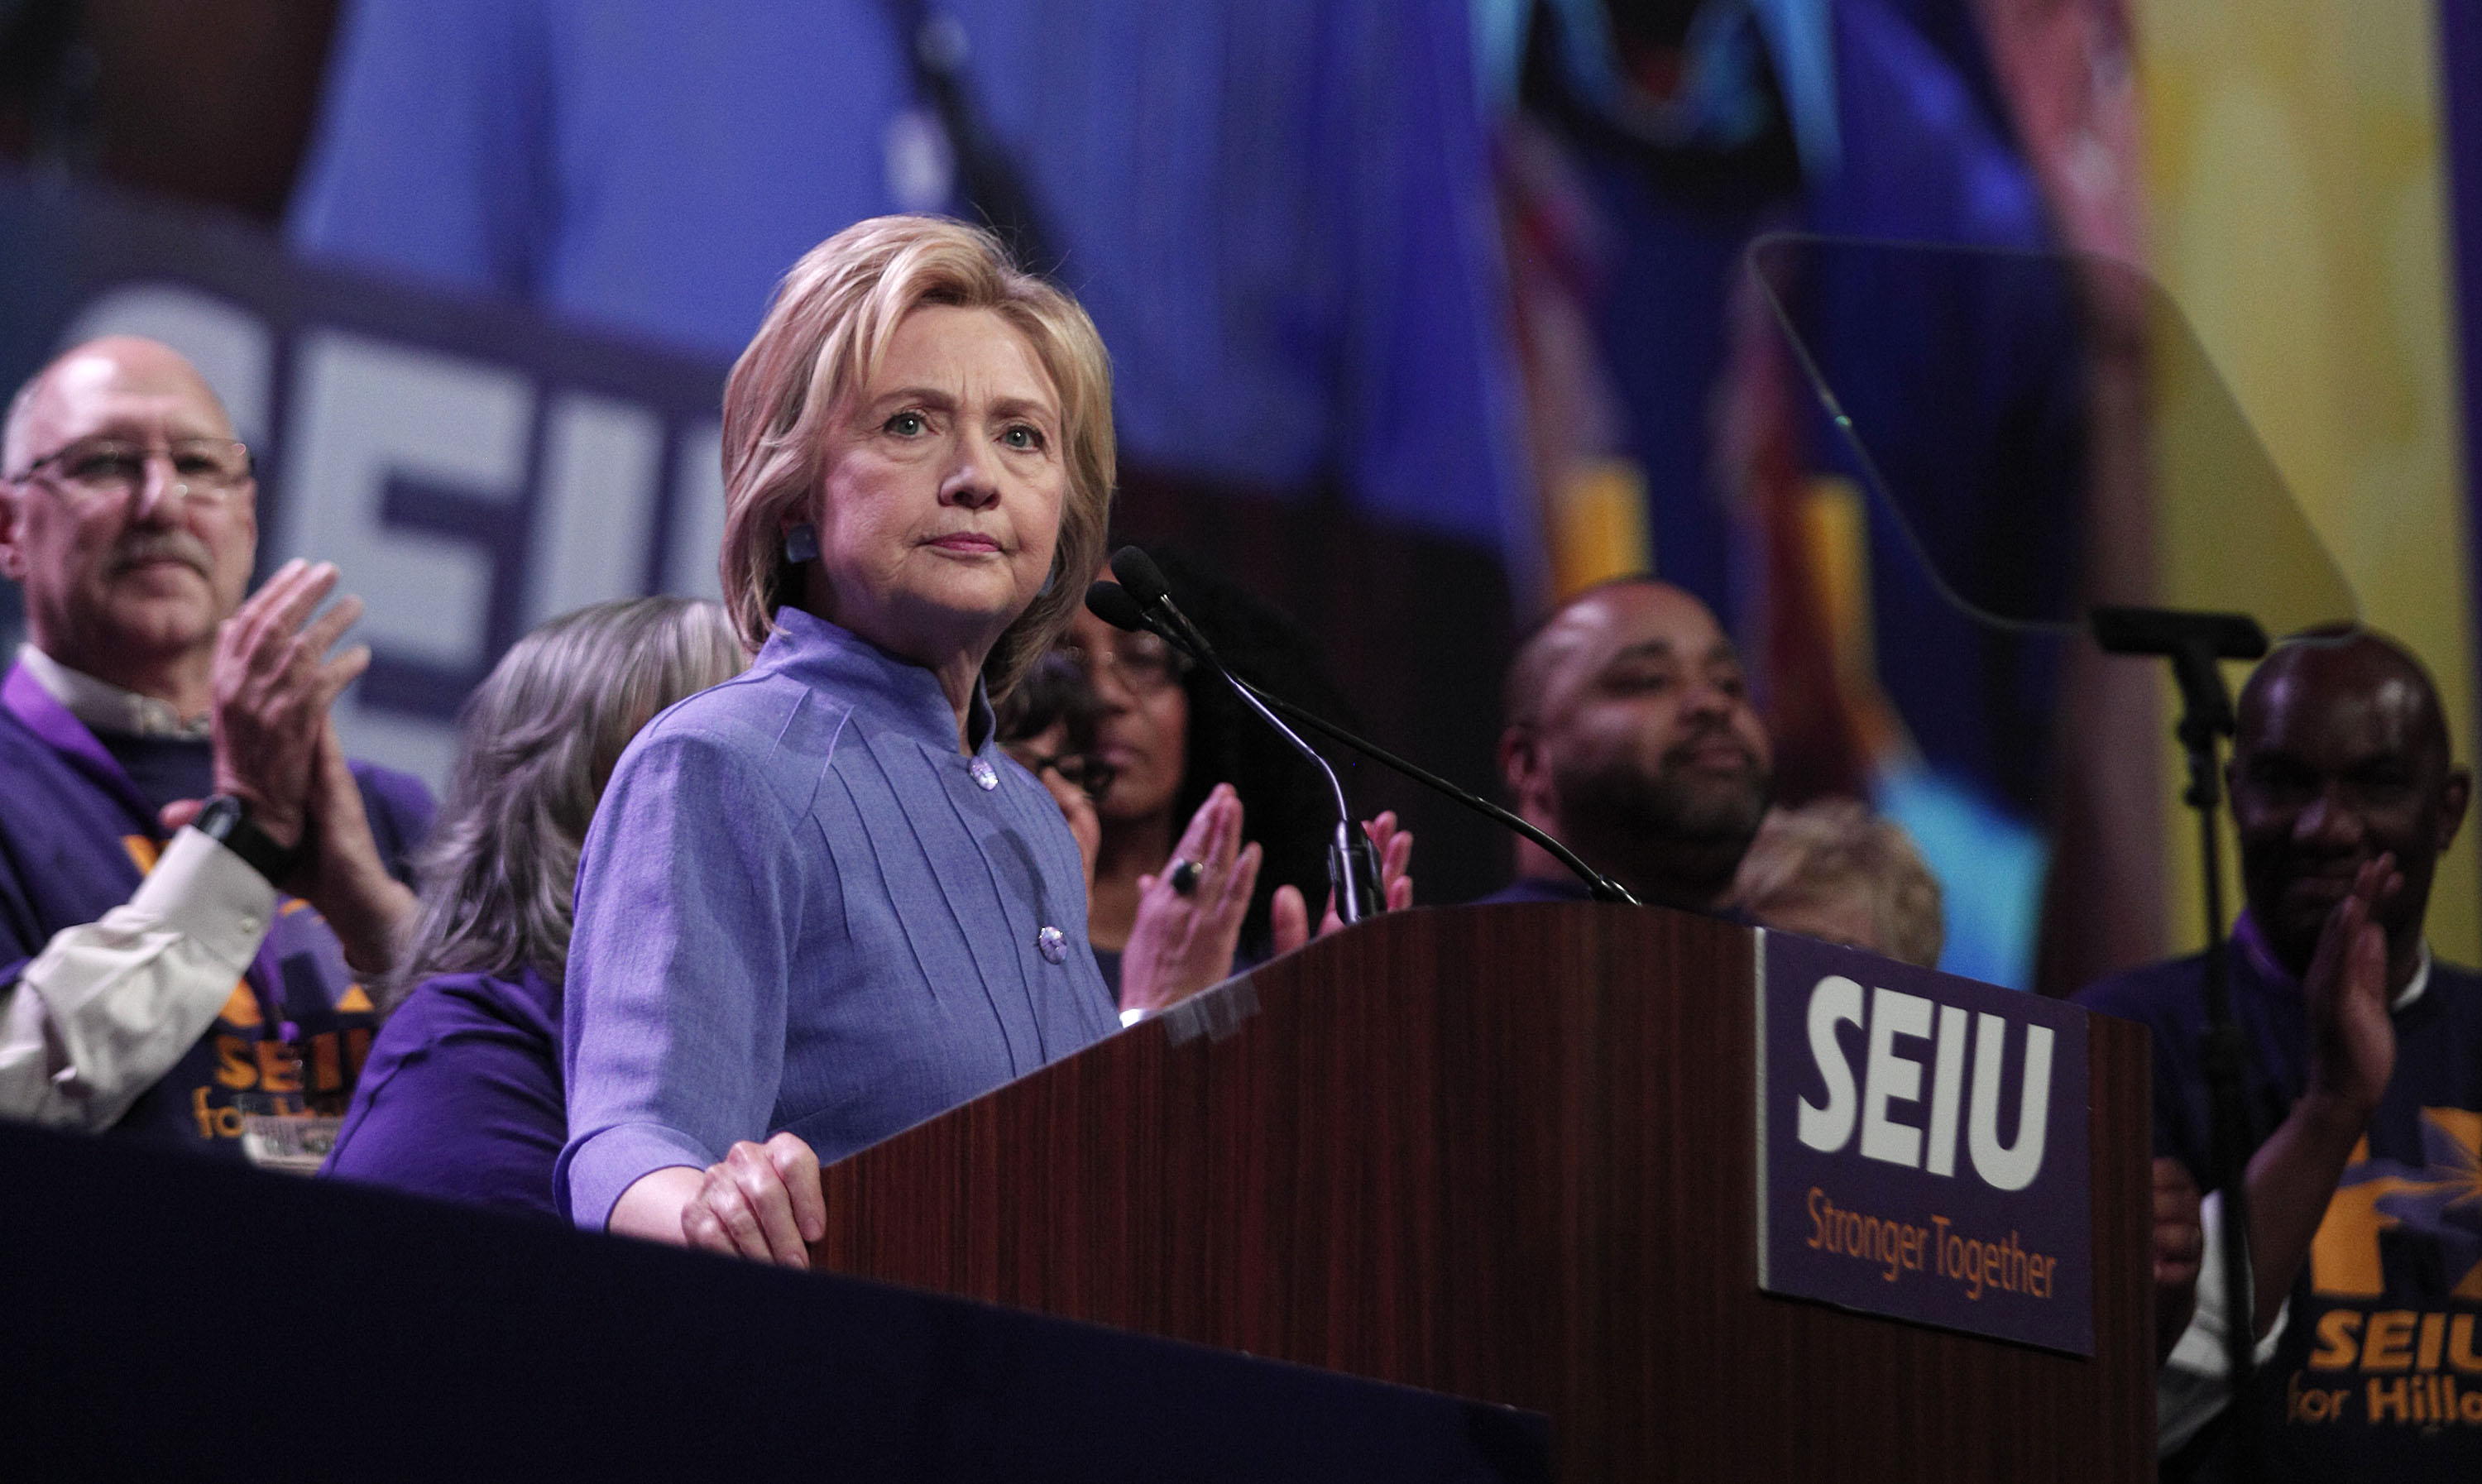 Democratic presidential candidate Hillary Clinton speaks at the Service Employees International Union (SEIU) 2016 International Convention at Cobo Center May 23, 2016 in Detroit, Michigan. Recent polls show Clinton in a tight race with Republican candidate Donald Trump.